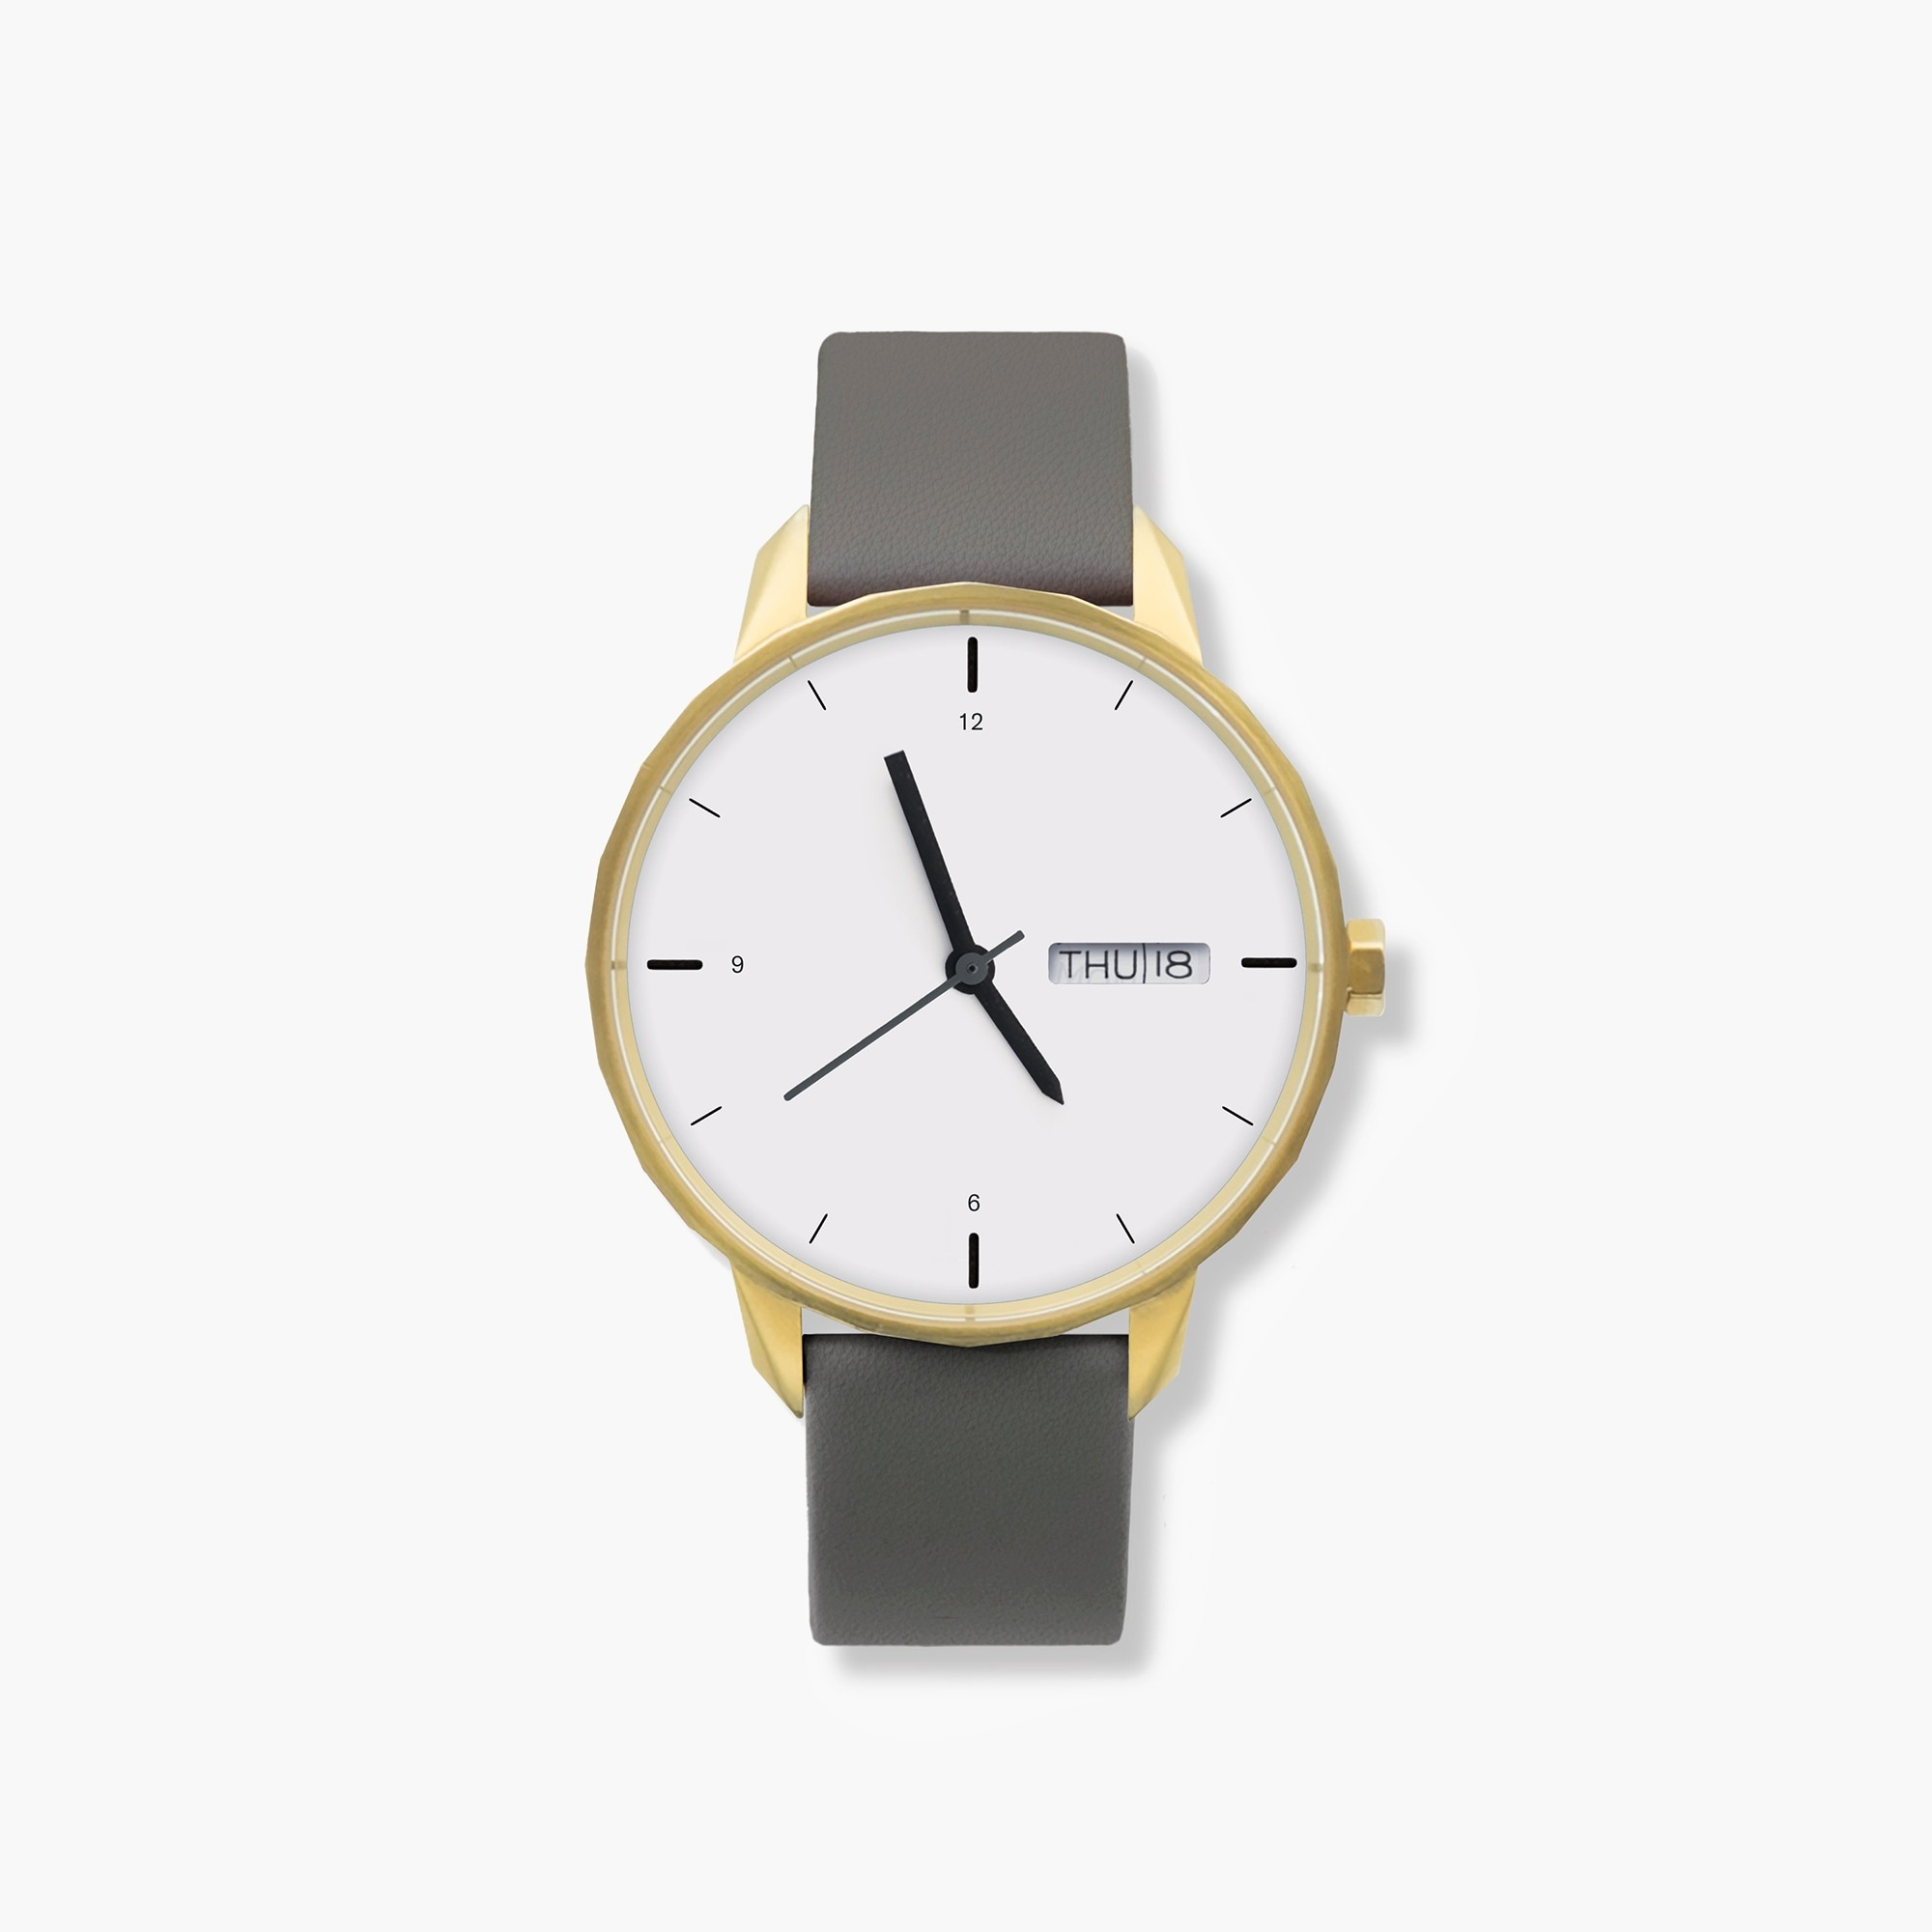 mens Tinker™ 42mm gold-toned watch with grey strap